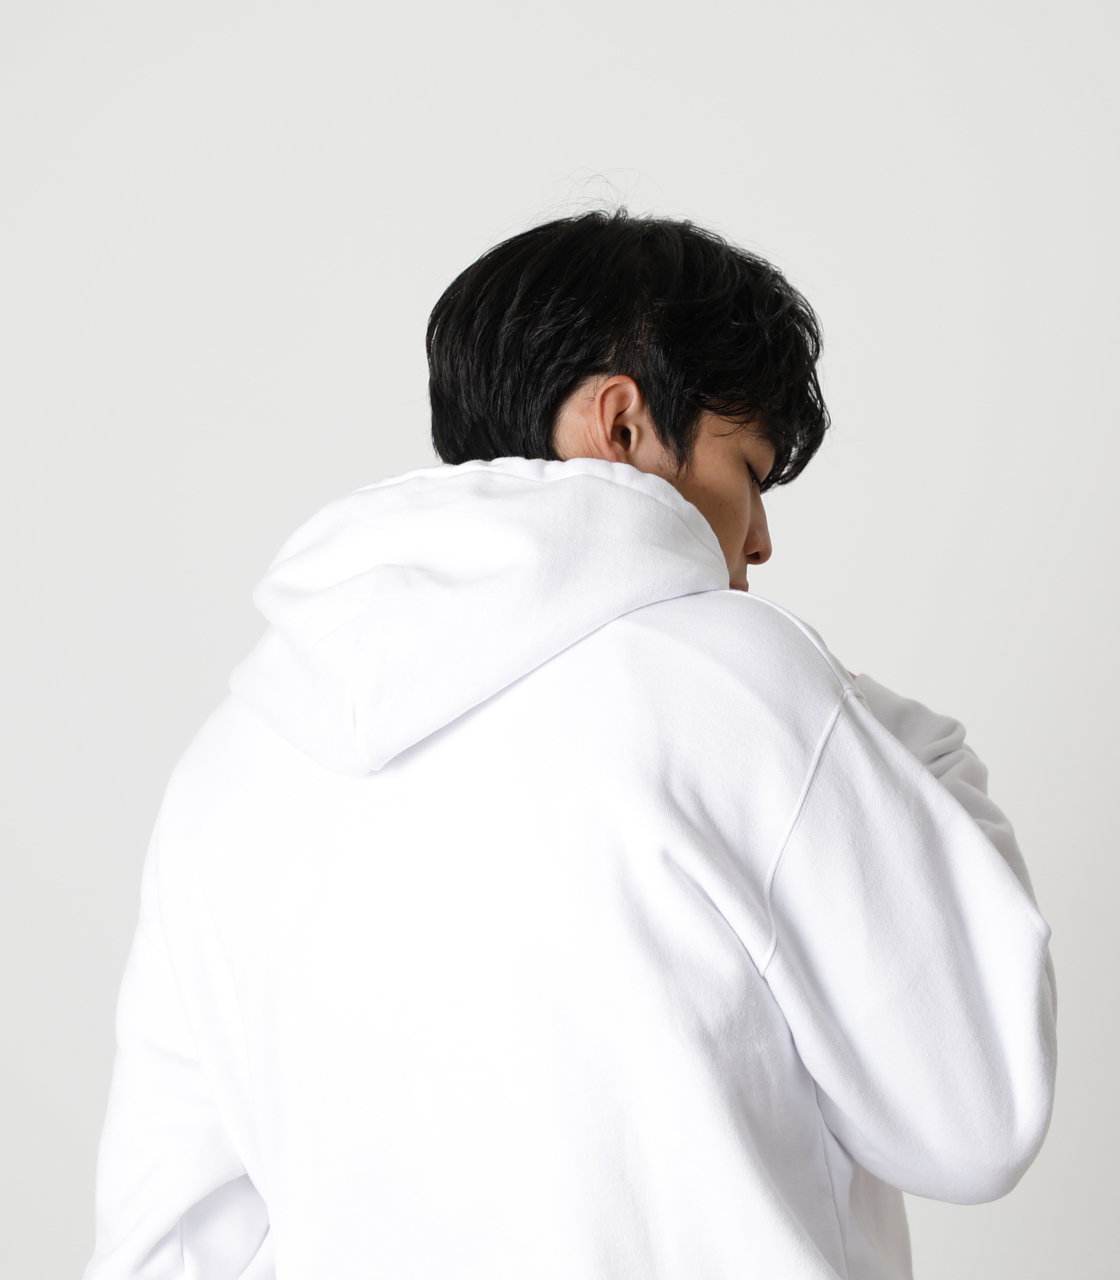 STAY IN POSITIVE HOODIE/ステイインポジティブフーディ 詳細画像 WHT 3